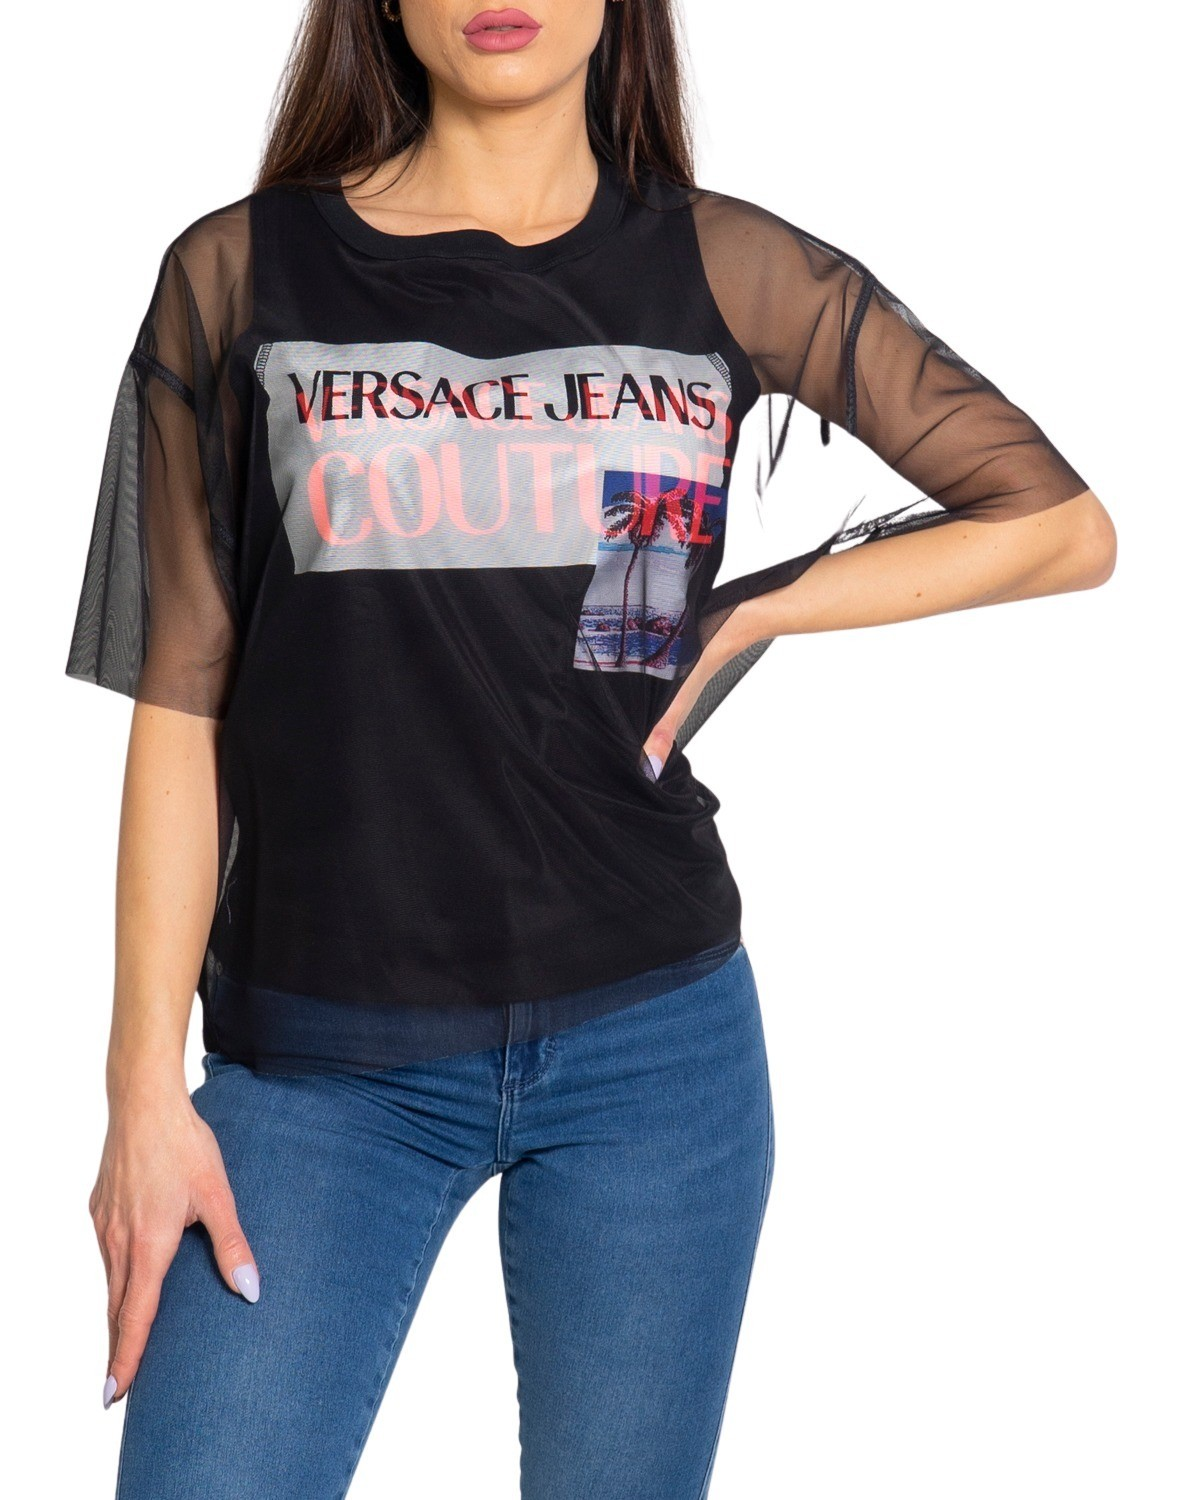 Marchio Versace Jeans Couture Genere Donna Tipologia T-shirt Stagione Prima…